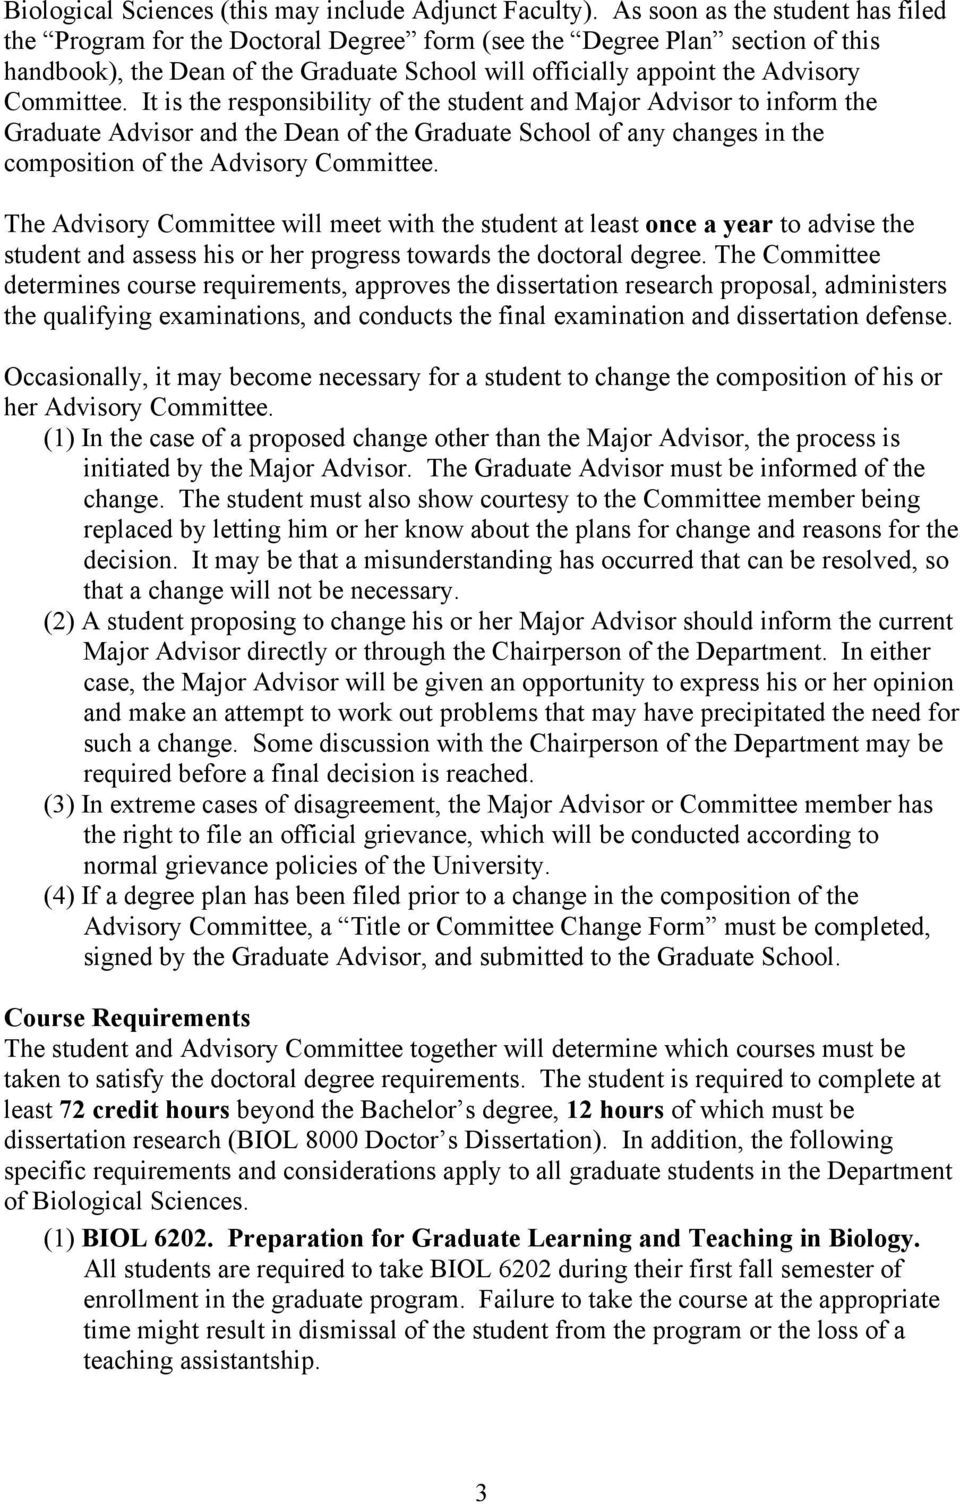 Committee. It is the responsibility of the student and Major Advisor to inform the Graduate Advisor and the Dean of the Graduate School of any changes in the composition of the Advisory Committee.